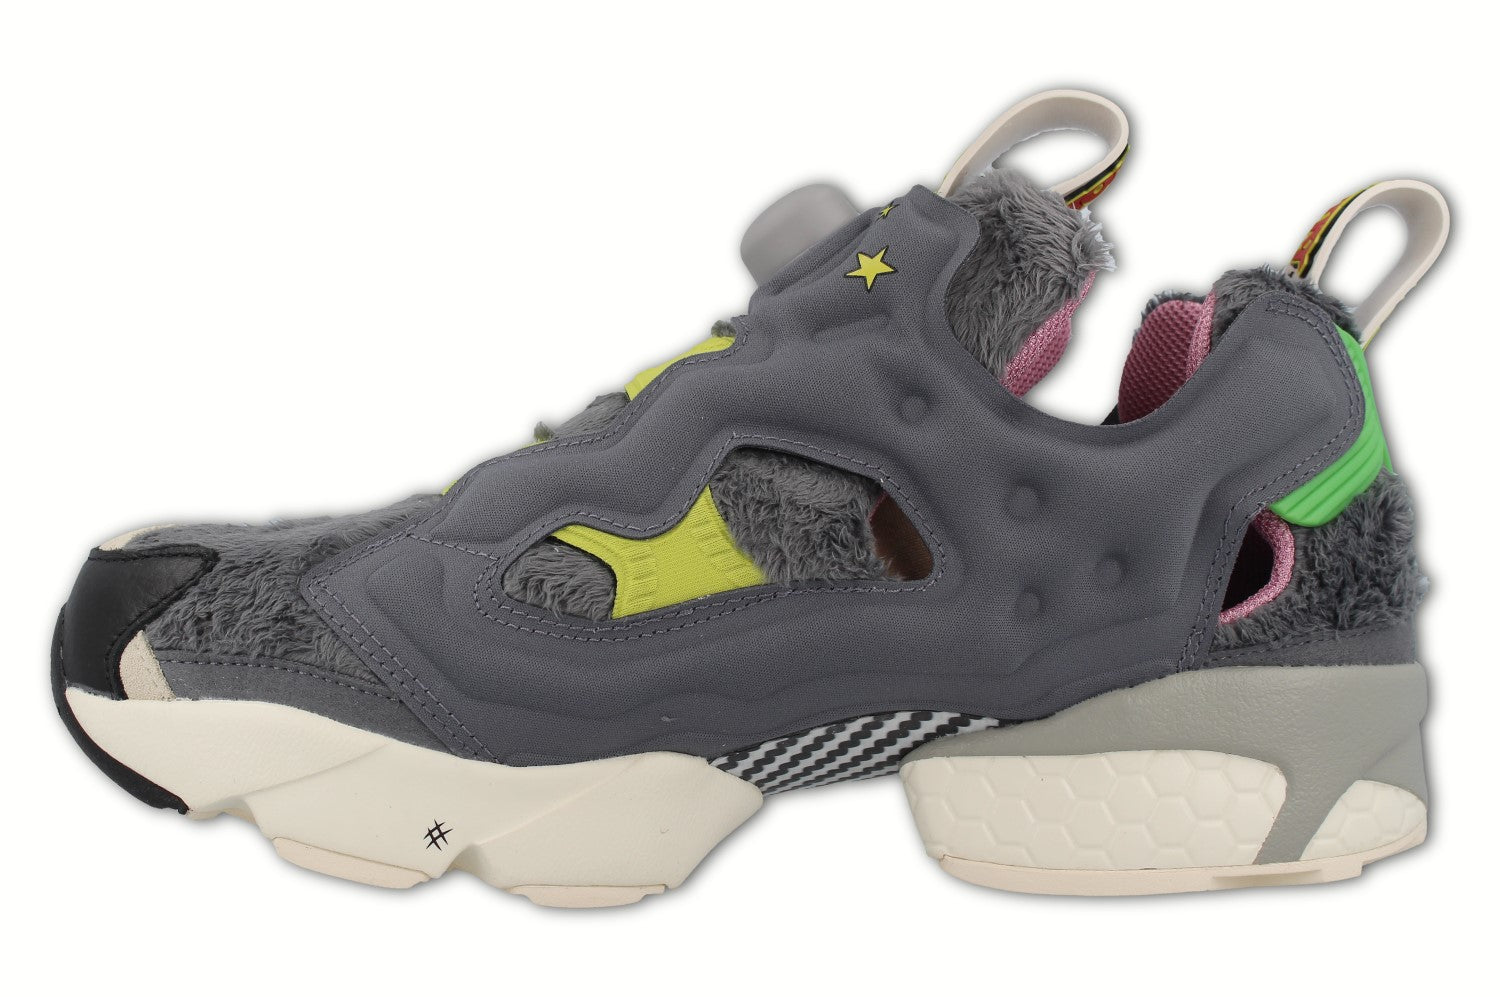 Instapump Fury OG MU - Tom & Jerry - Schrittmacher Shop